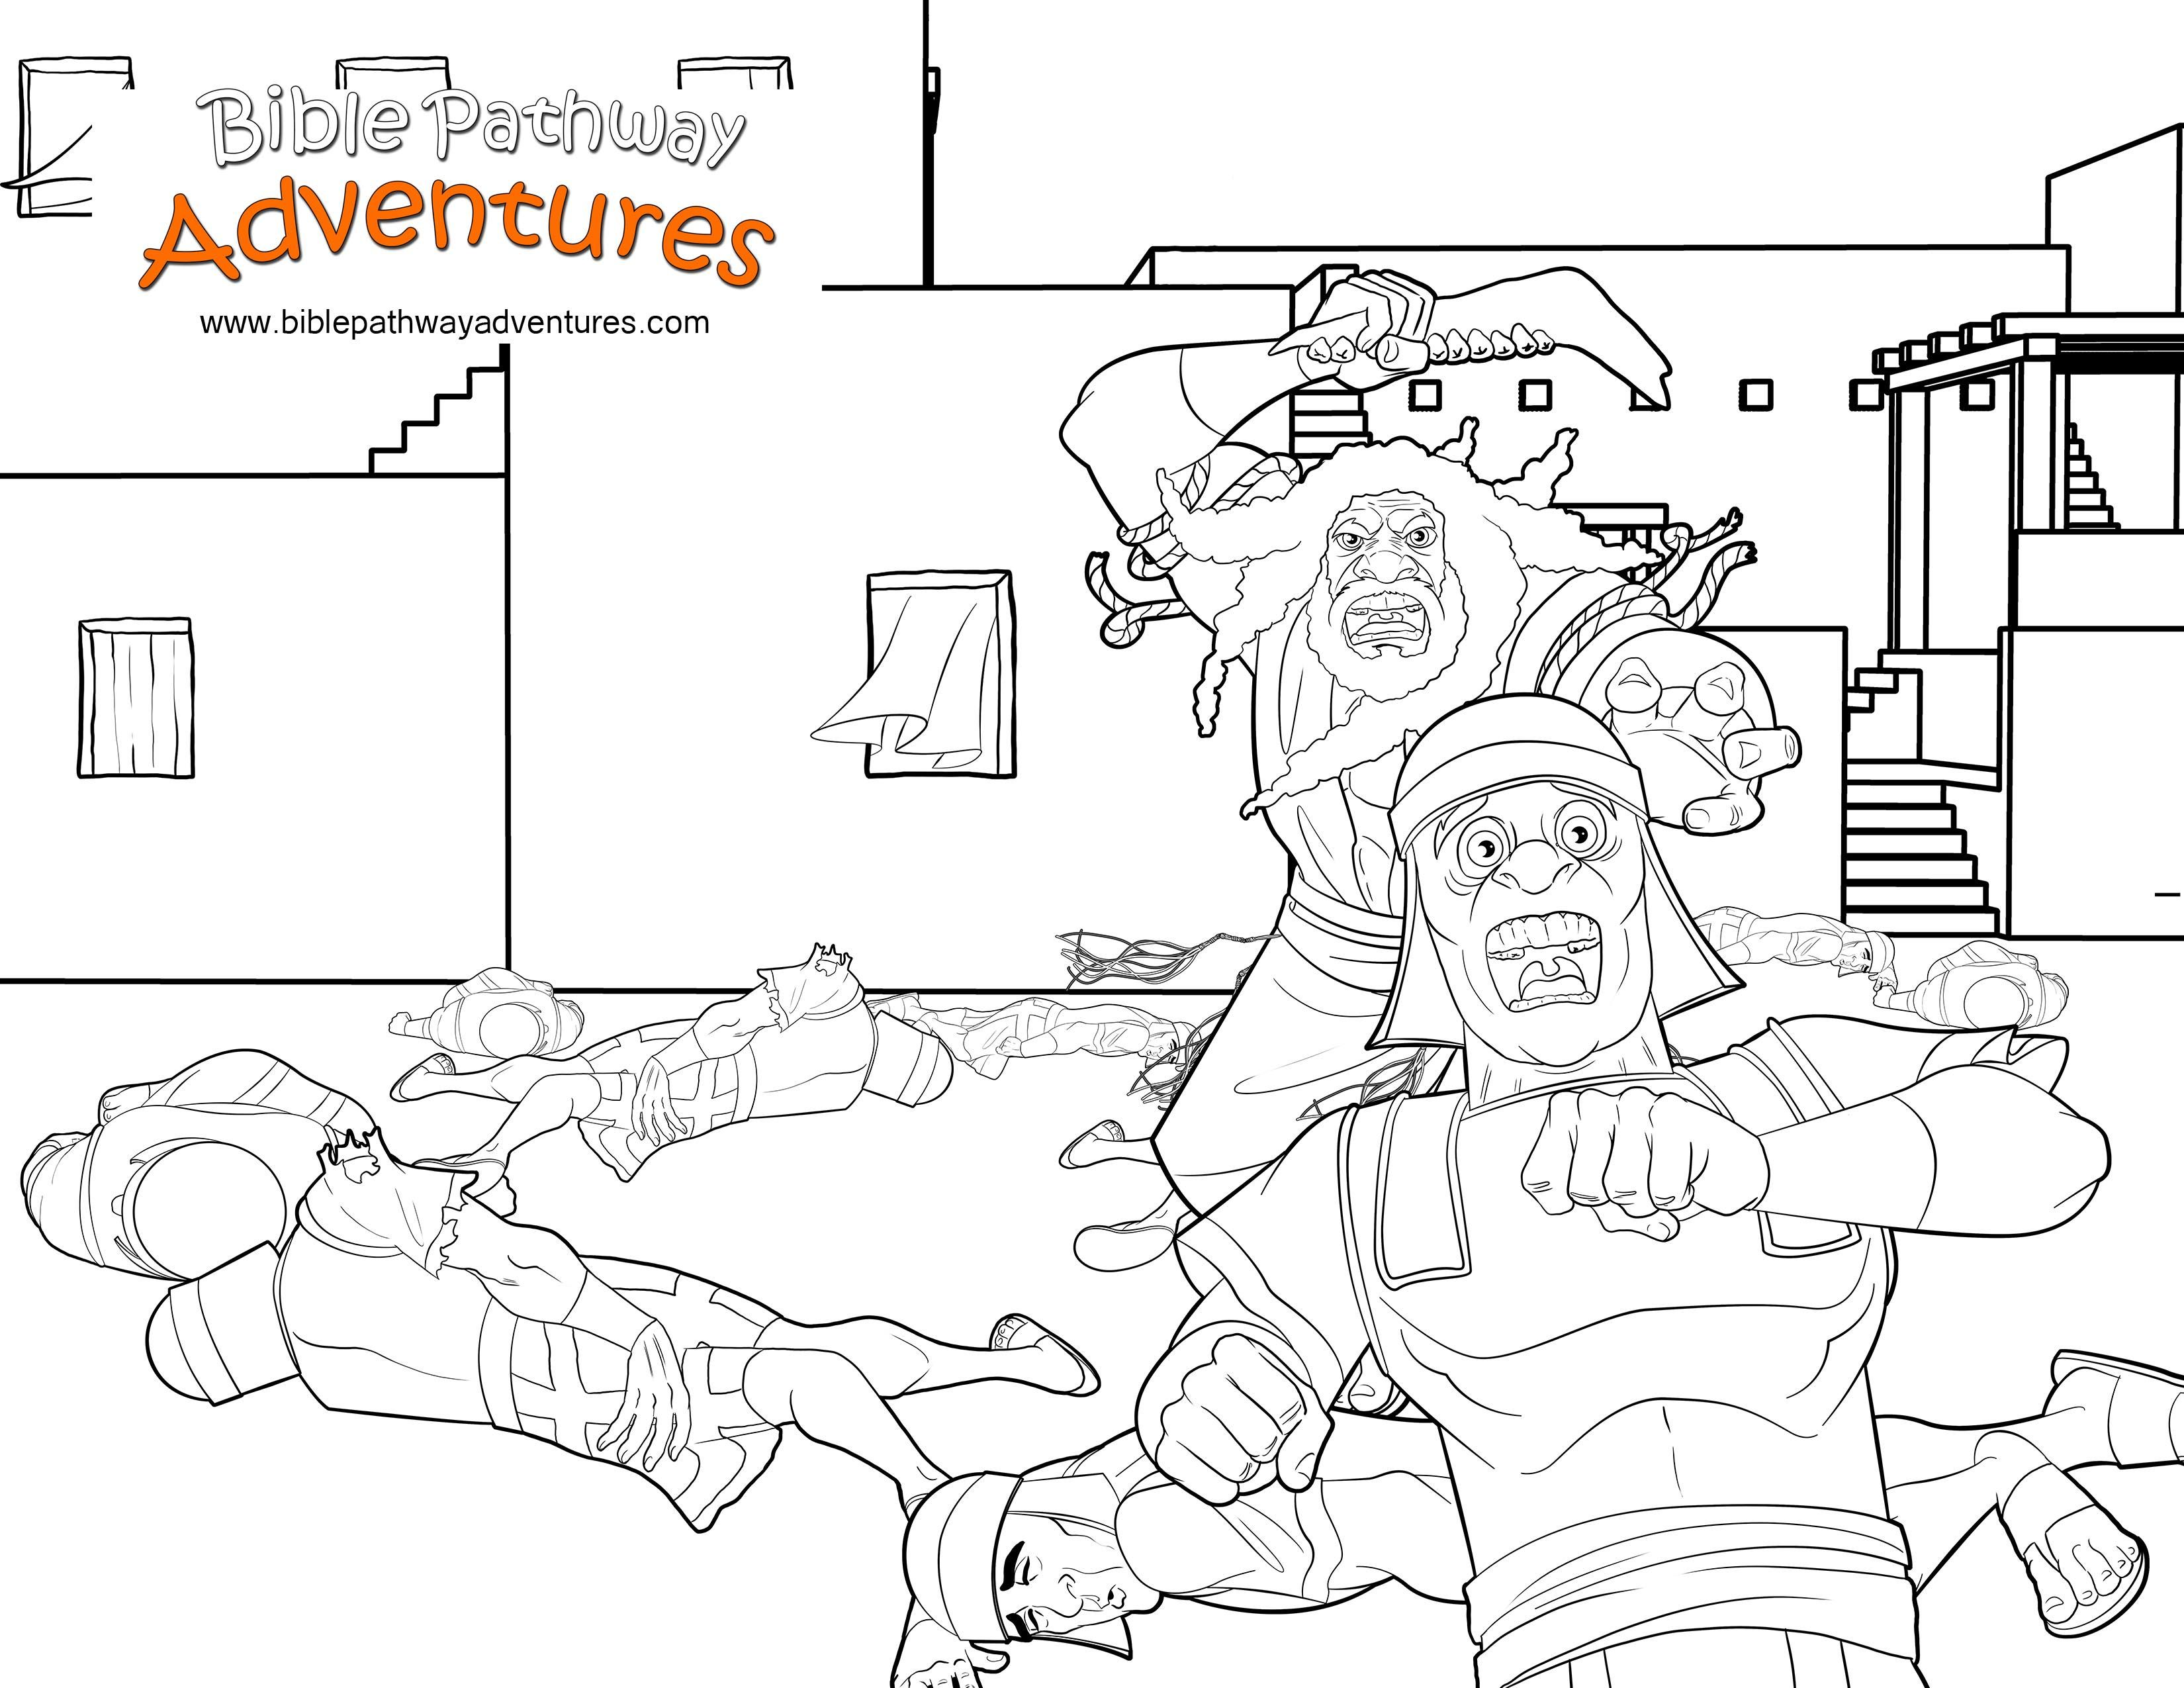 Bible Coloring Page: Samson defeats the Philistines | FREE Bible ...